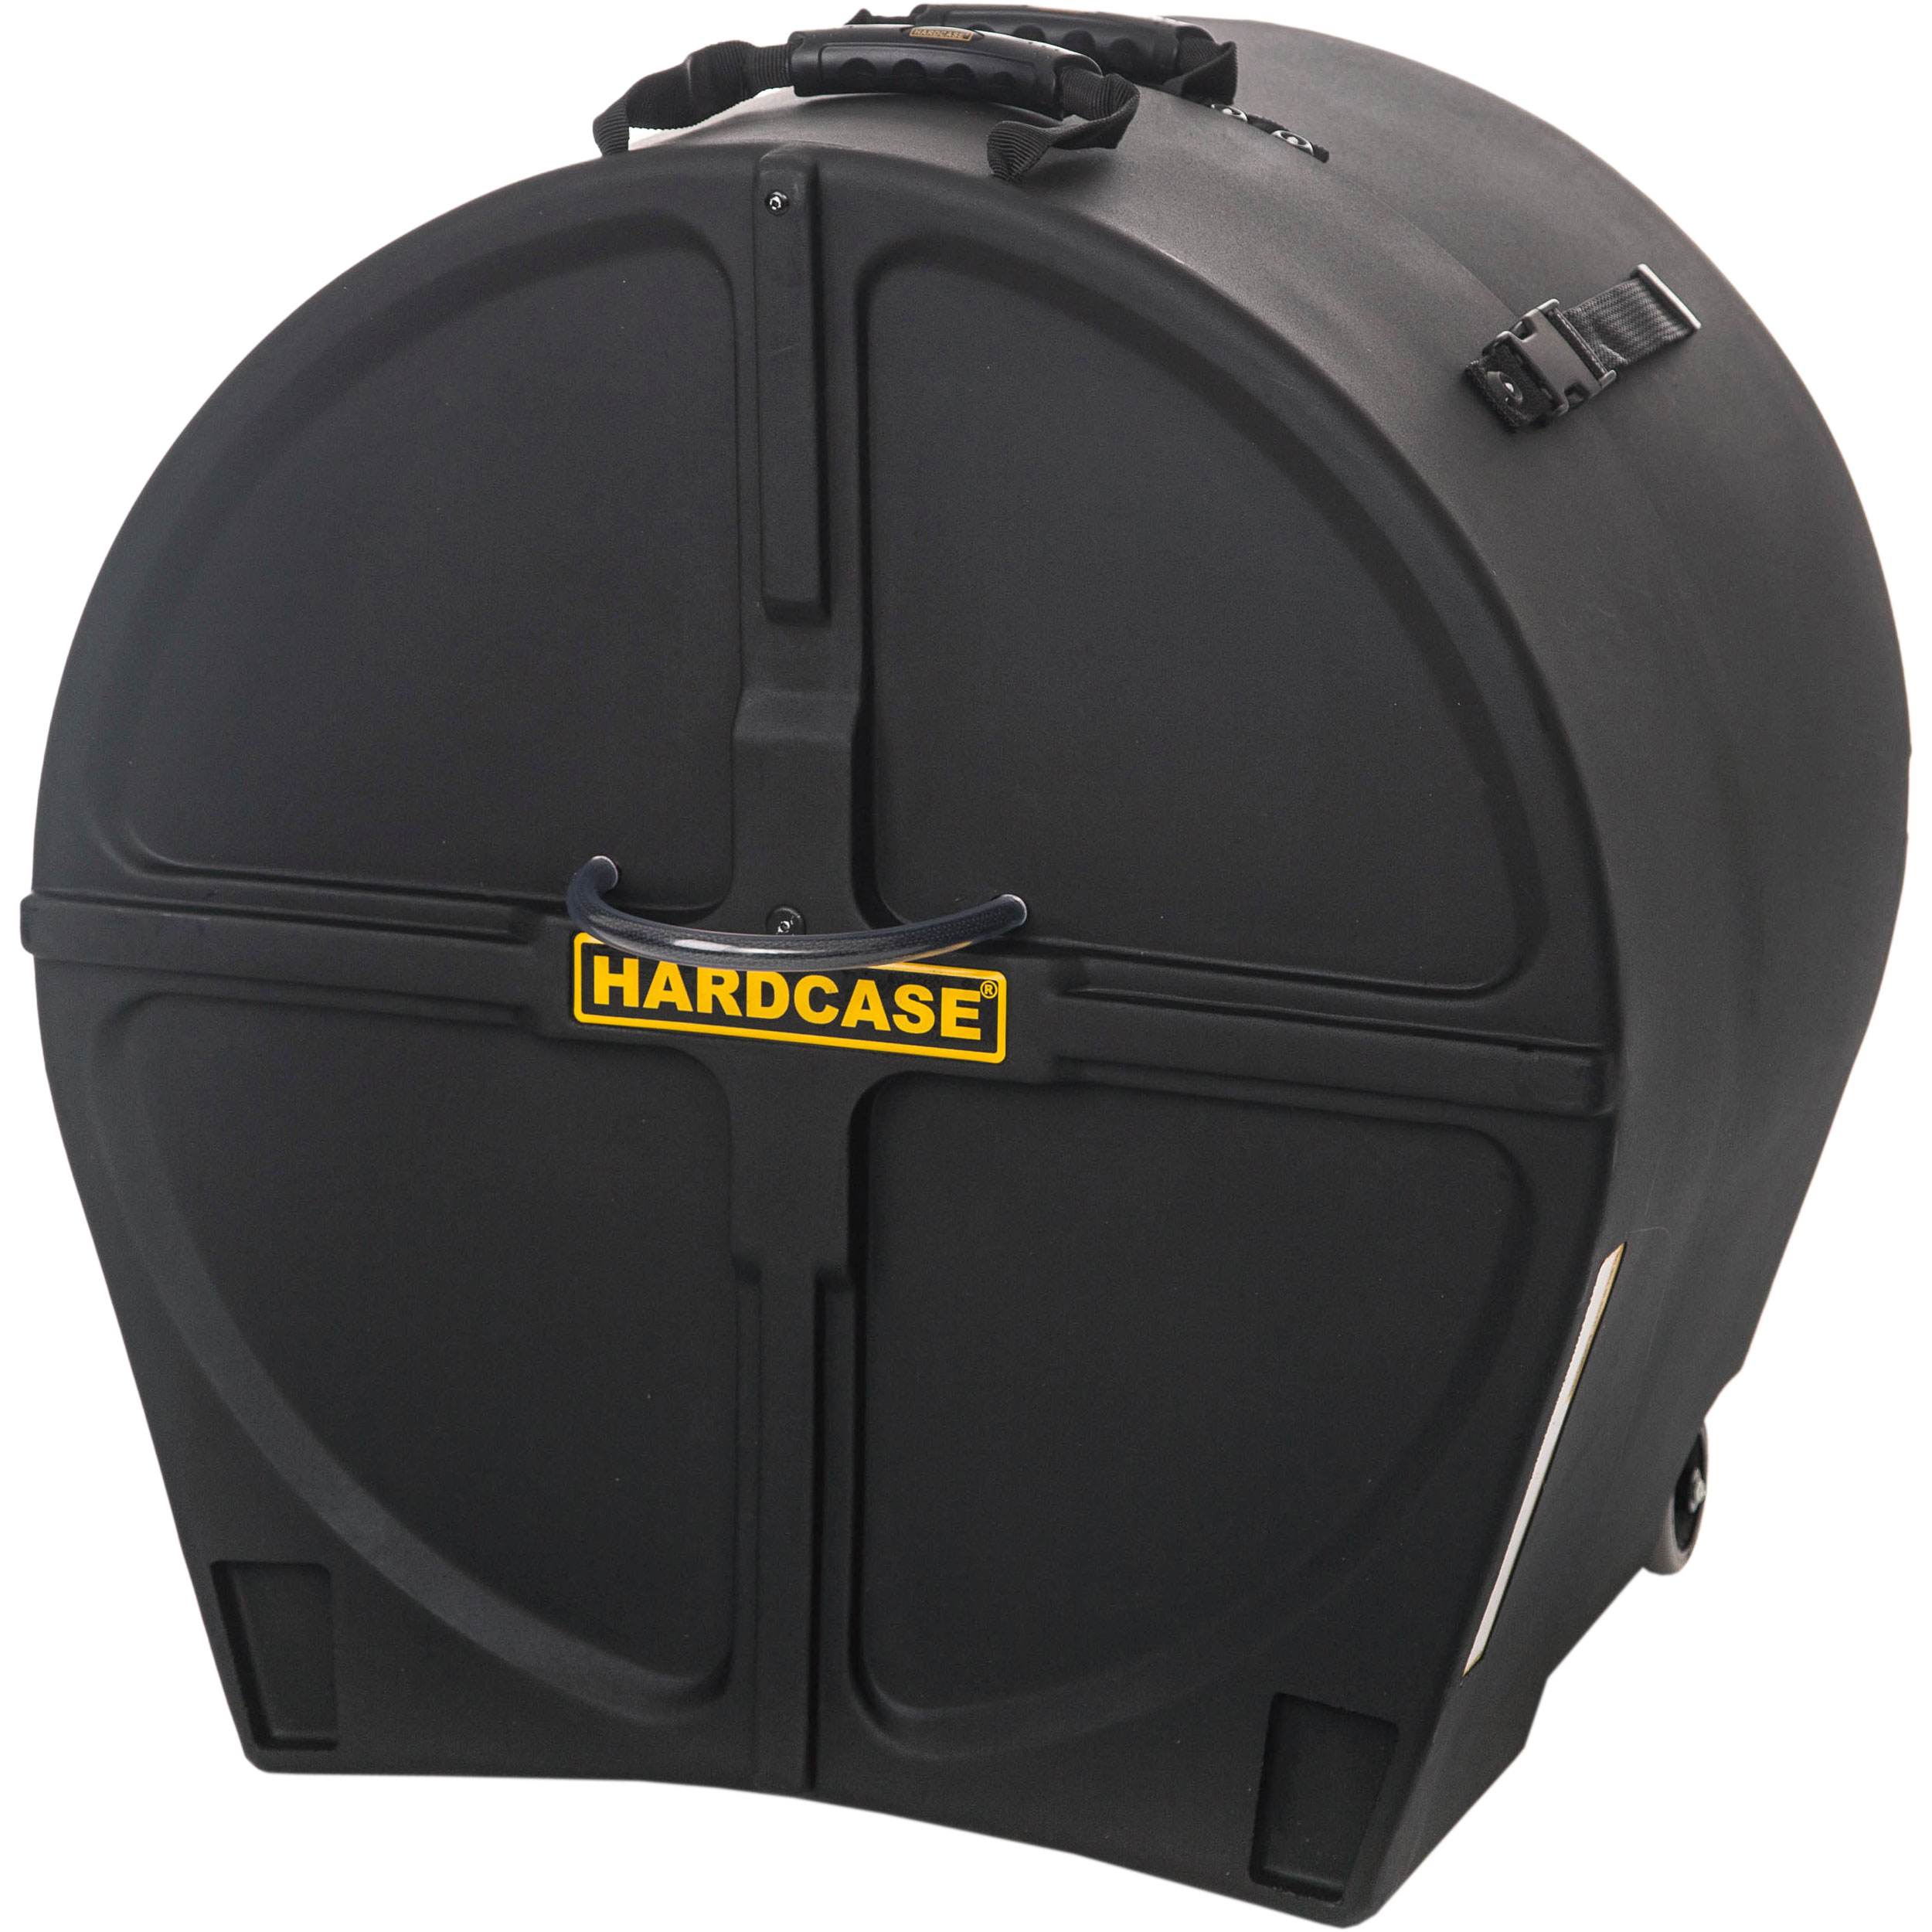 "Hardcase 20"" (Diameter) x 16-to-20"" (Deep) Bass Drum Case with Wheels"